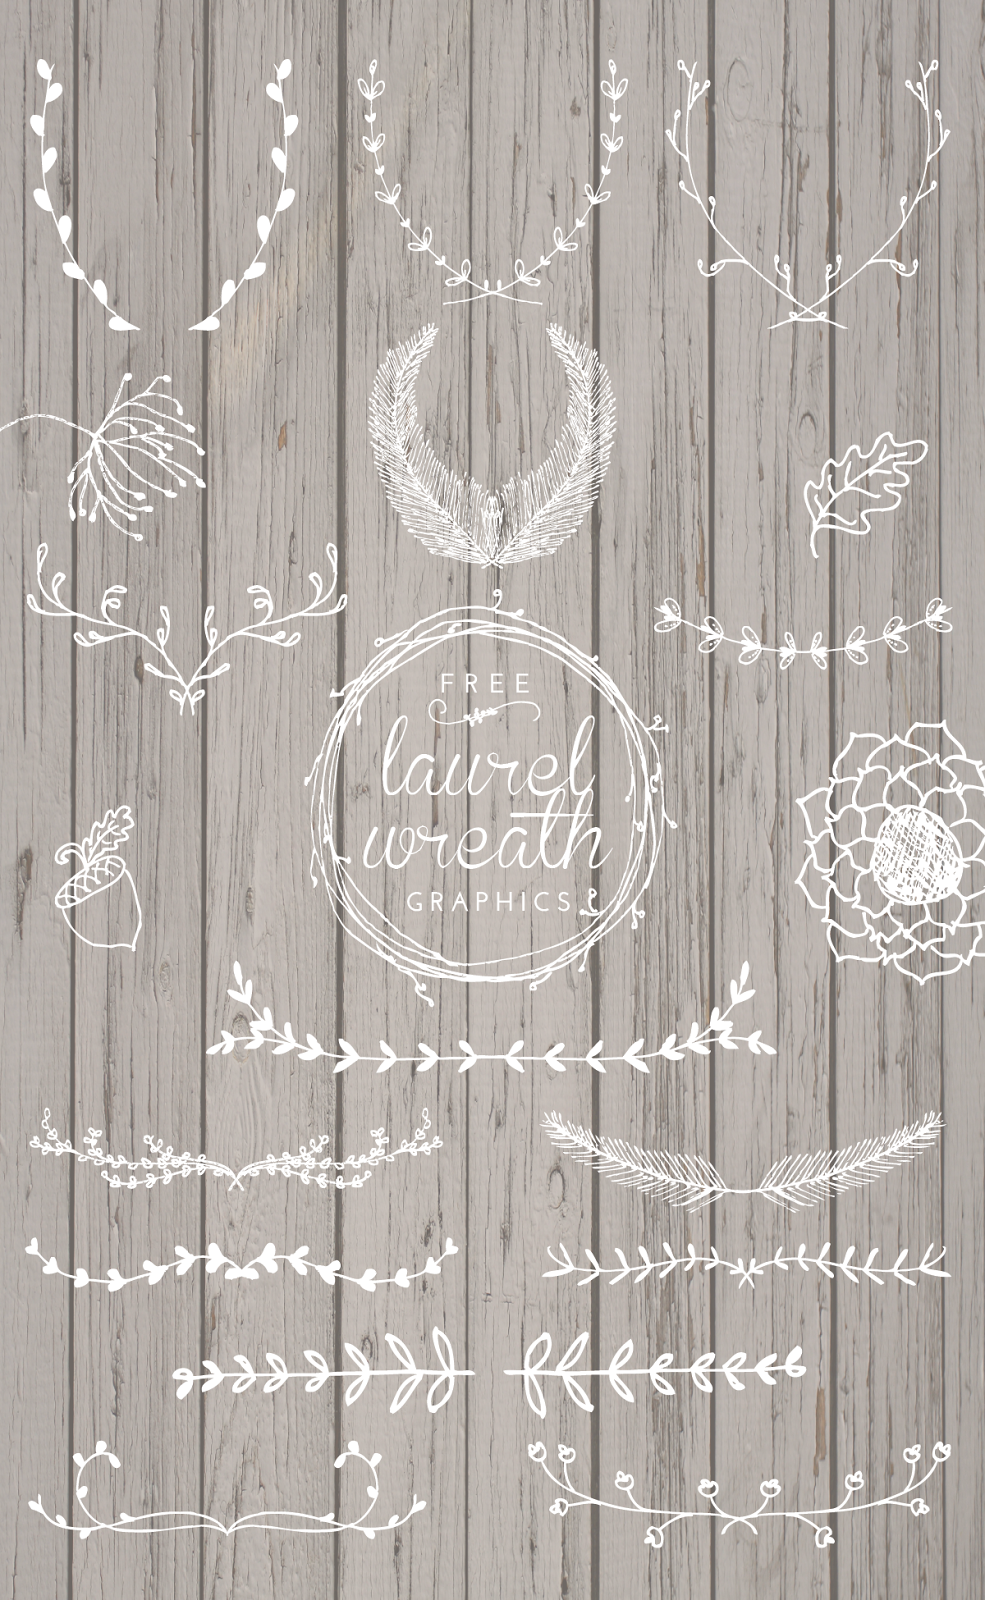 Free Laurel Wreath Graphics Printables And Downloadables Years Ago Ai How To Edit This Vector For Commercial Use With Beautiful Hand Drawn Elements Your Designs